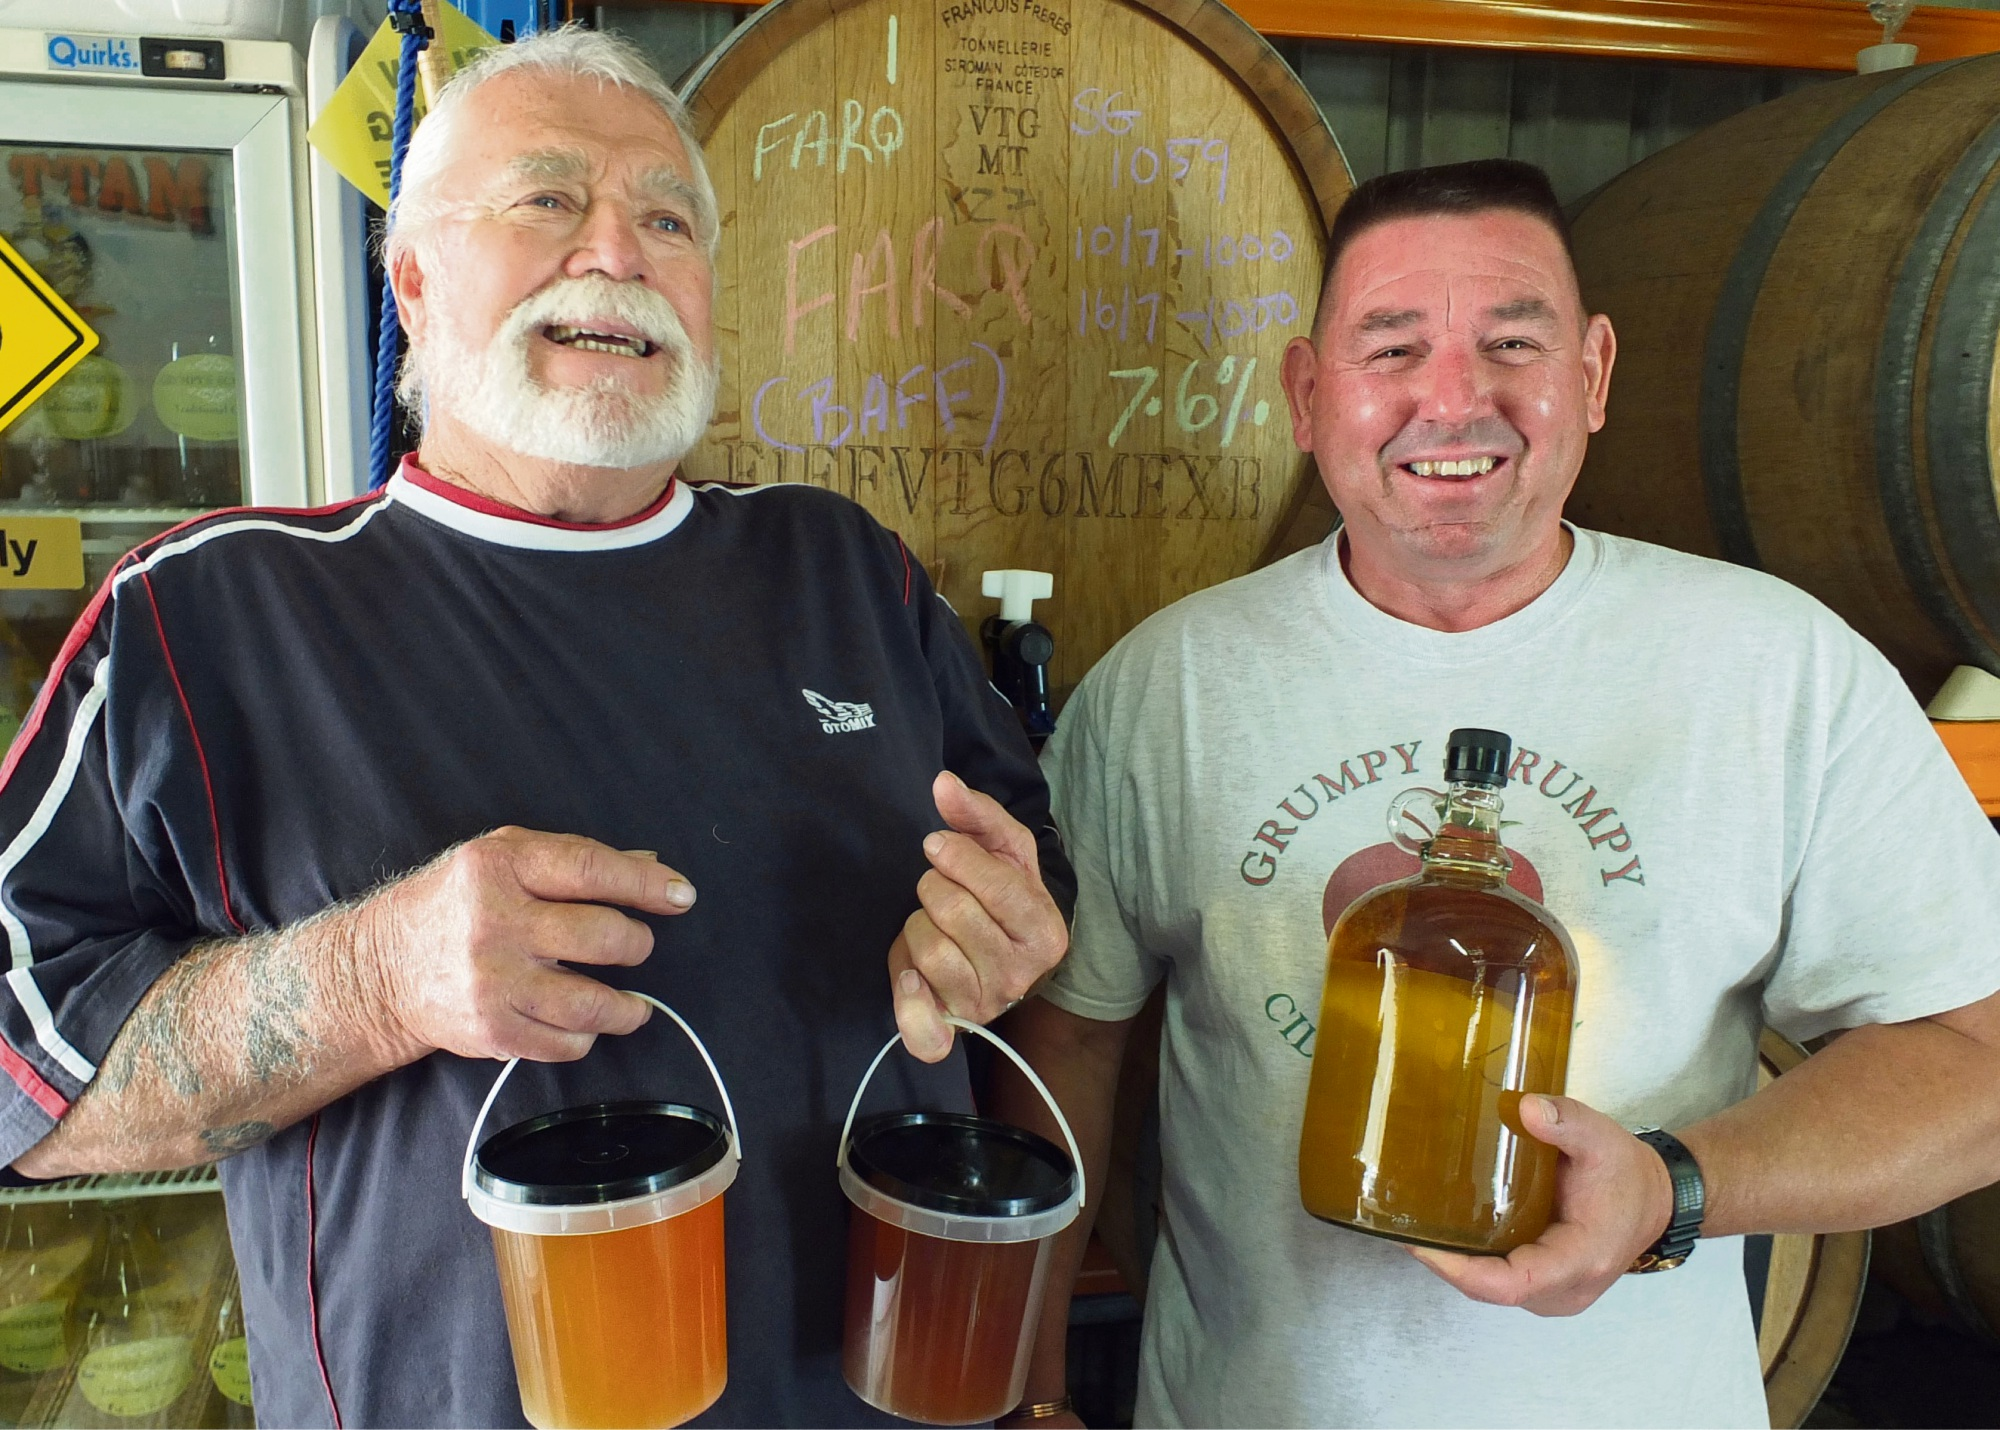 Honey producer Colin Hall and Grumpy Scrumpy cider team head Carey Morris are looking forward to showing their wares.